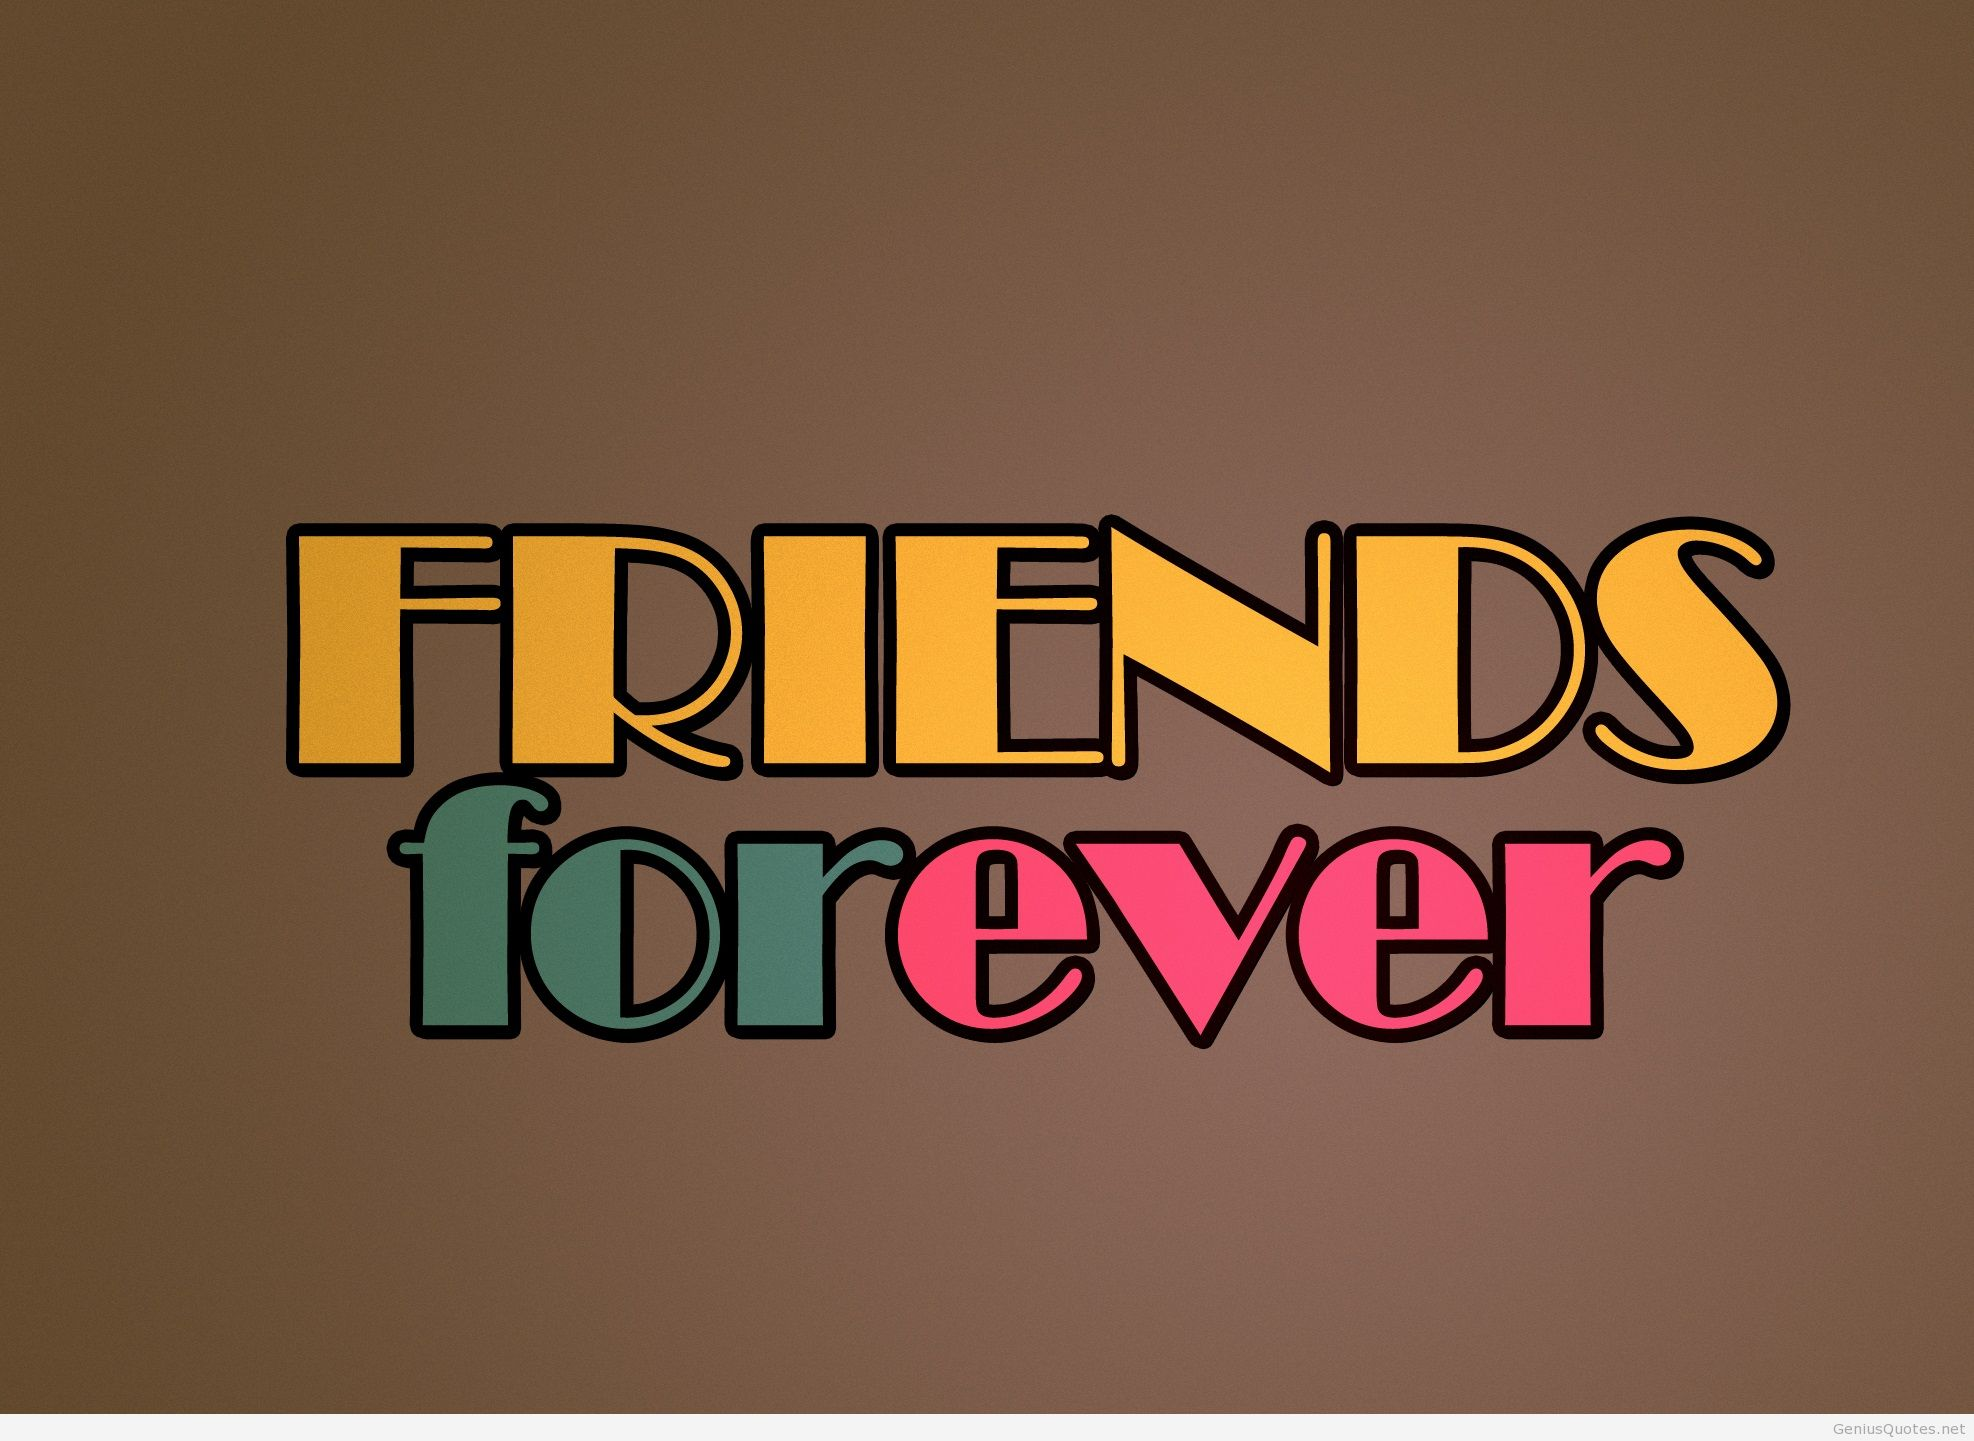 Friends Forever Image download best HD   digitalimagemakerworldcom 1974x1441